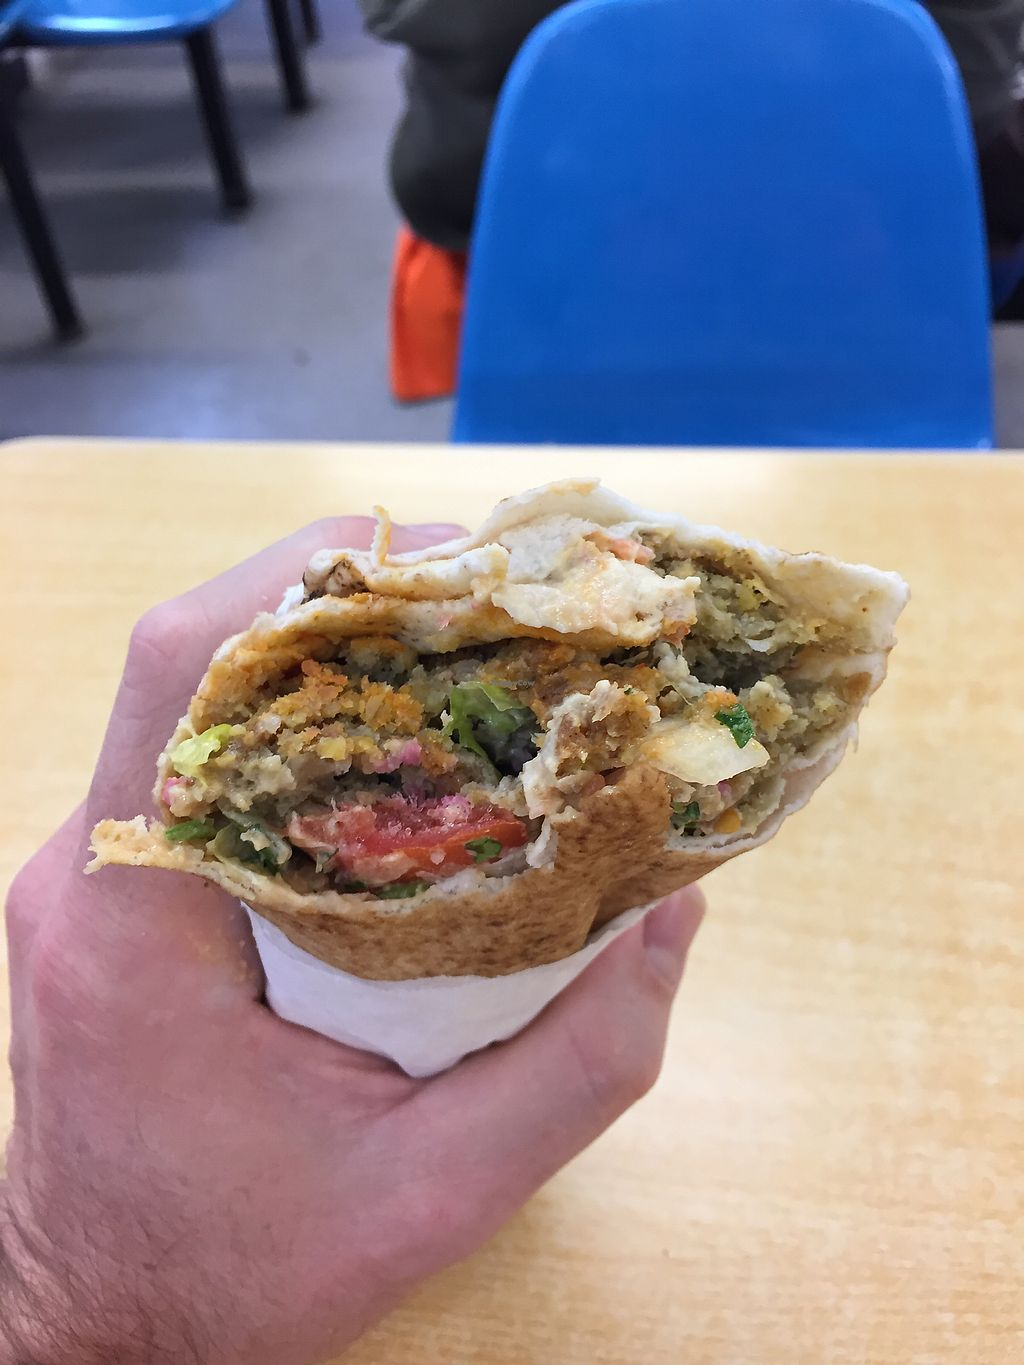 """Photo of Falafel Hummos and Salad Wrap  by <a href=""""/members/profile/DanielBrunt"""">DanielBrunt</a> <br/>A couple of bites in, this is delicious!  <br/> October 13, 2017  - <a href='/contact/abuse/image/102794/314864'>Report</a>"""